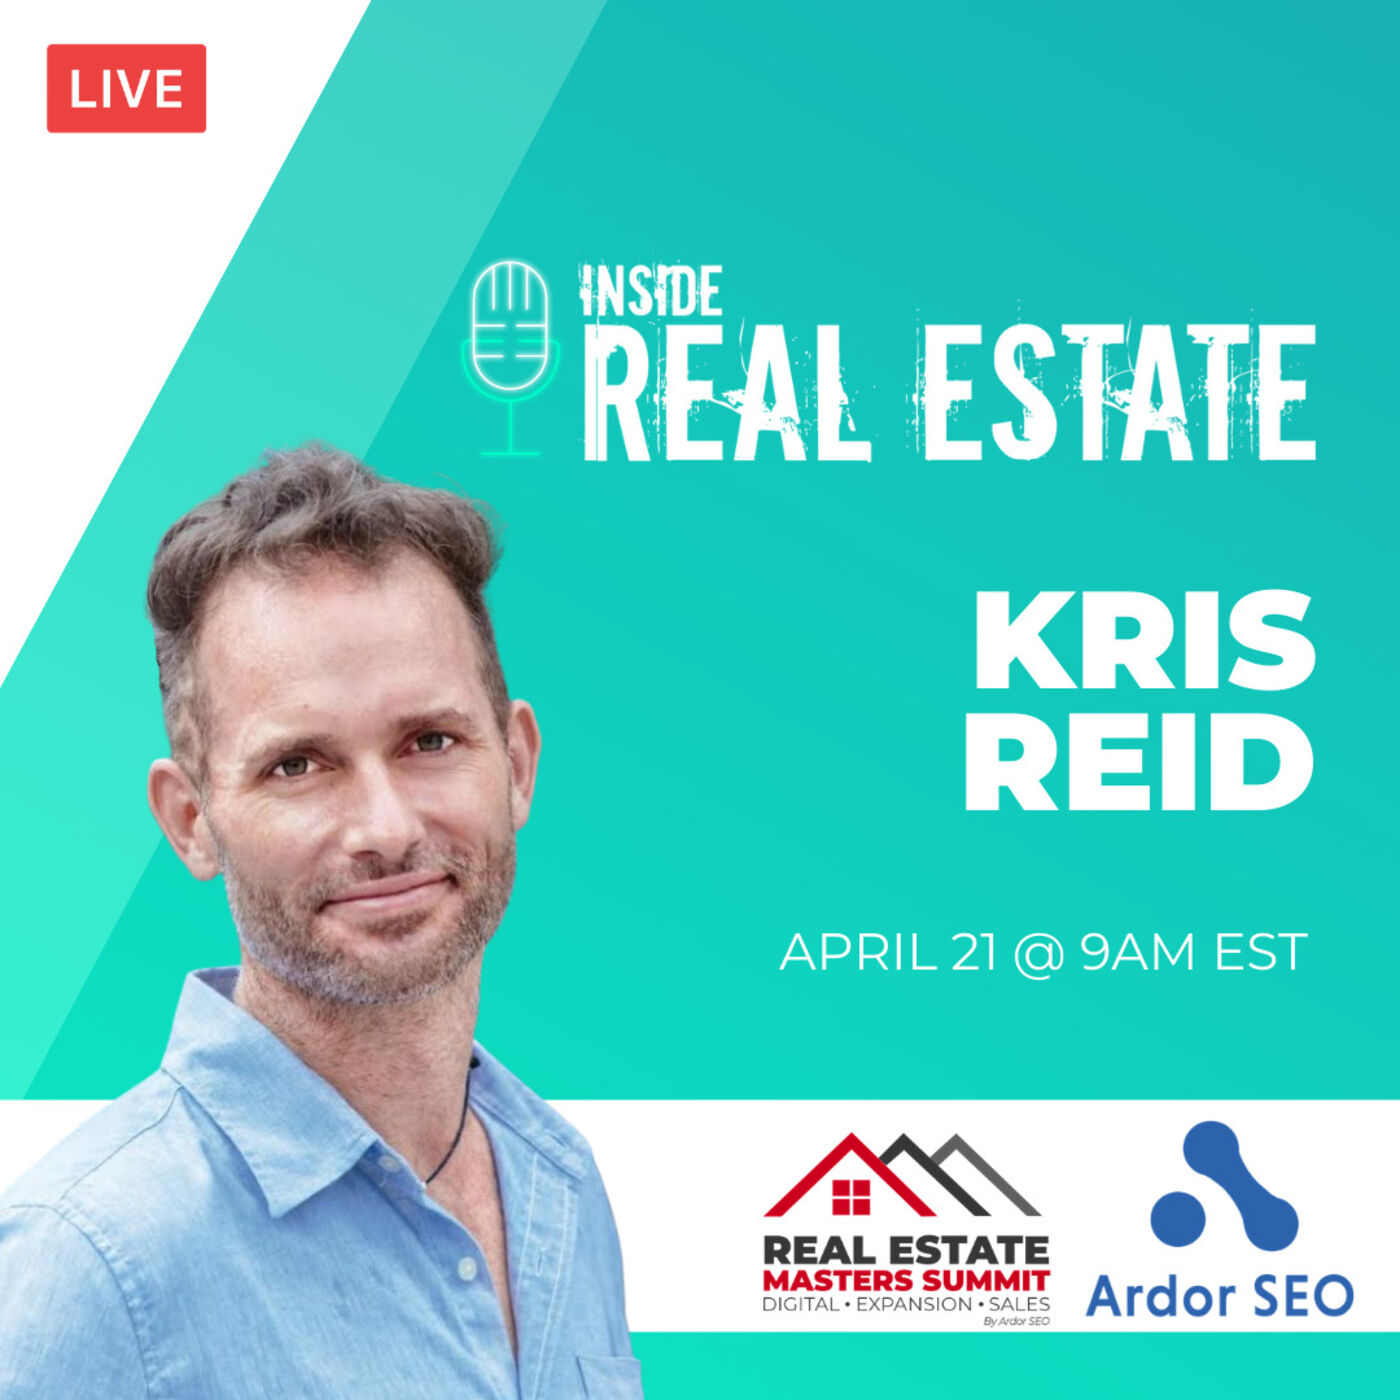 Kris Reid, Ardor SEO and Real Estate Masters Summit - SEO and Your Business